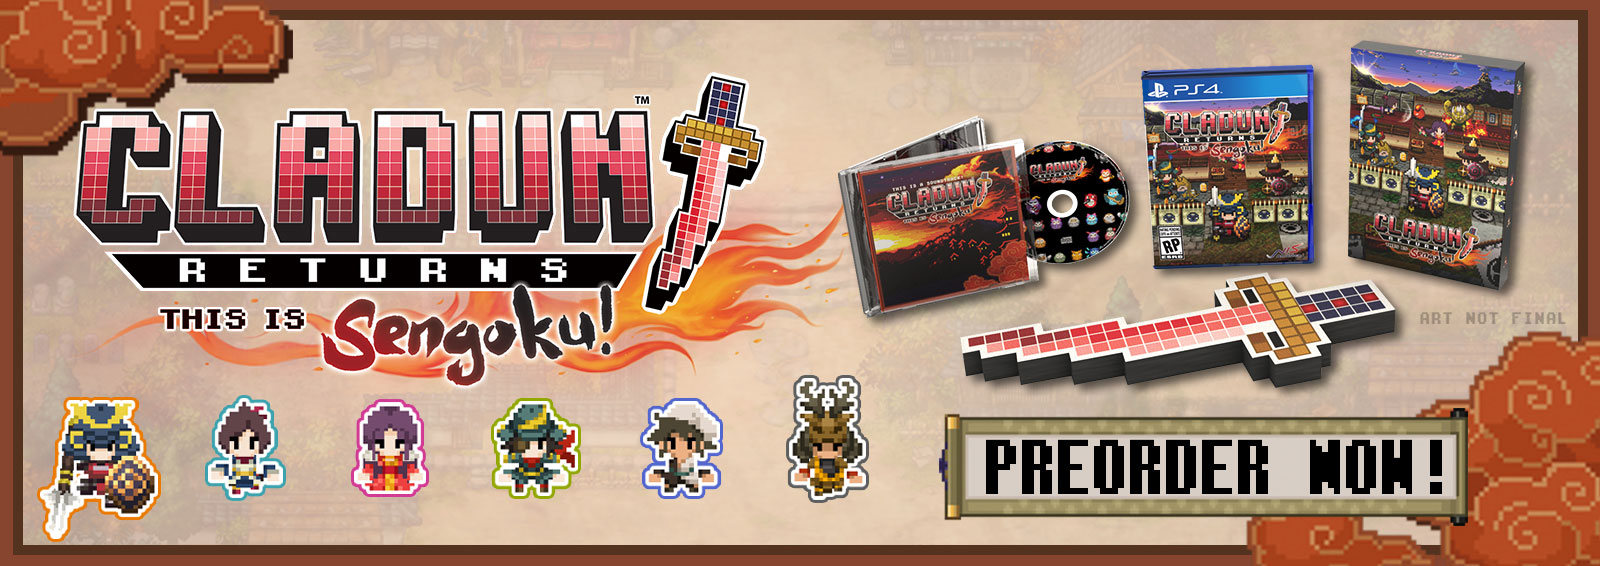 Cladun Returns: This is Sengoku! Limited Edition